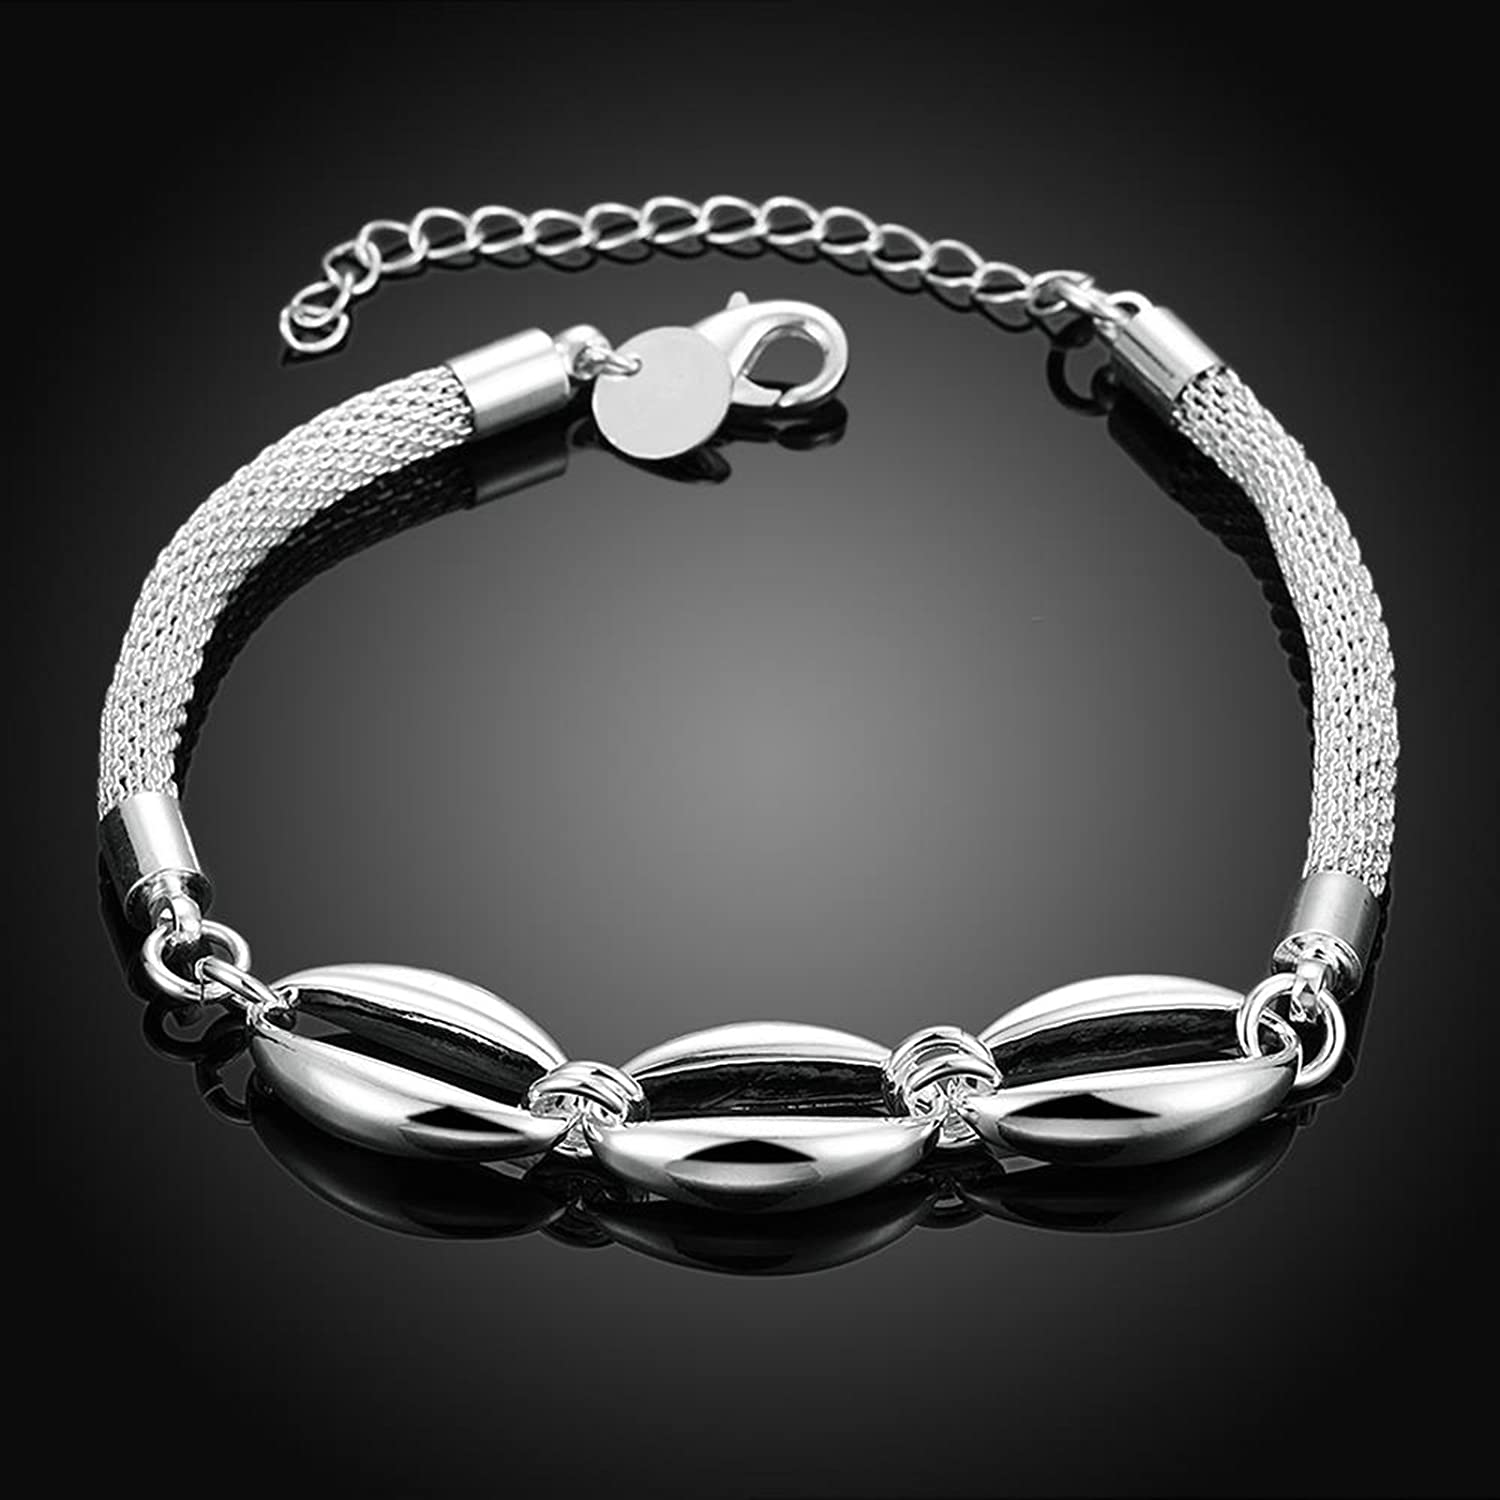 Gnzoe Fashion Jewelry Silver Plated Silver Crystal Olive Shape Bracelet Bangle For Women Girls Adjustable Length